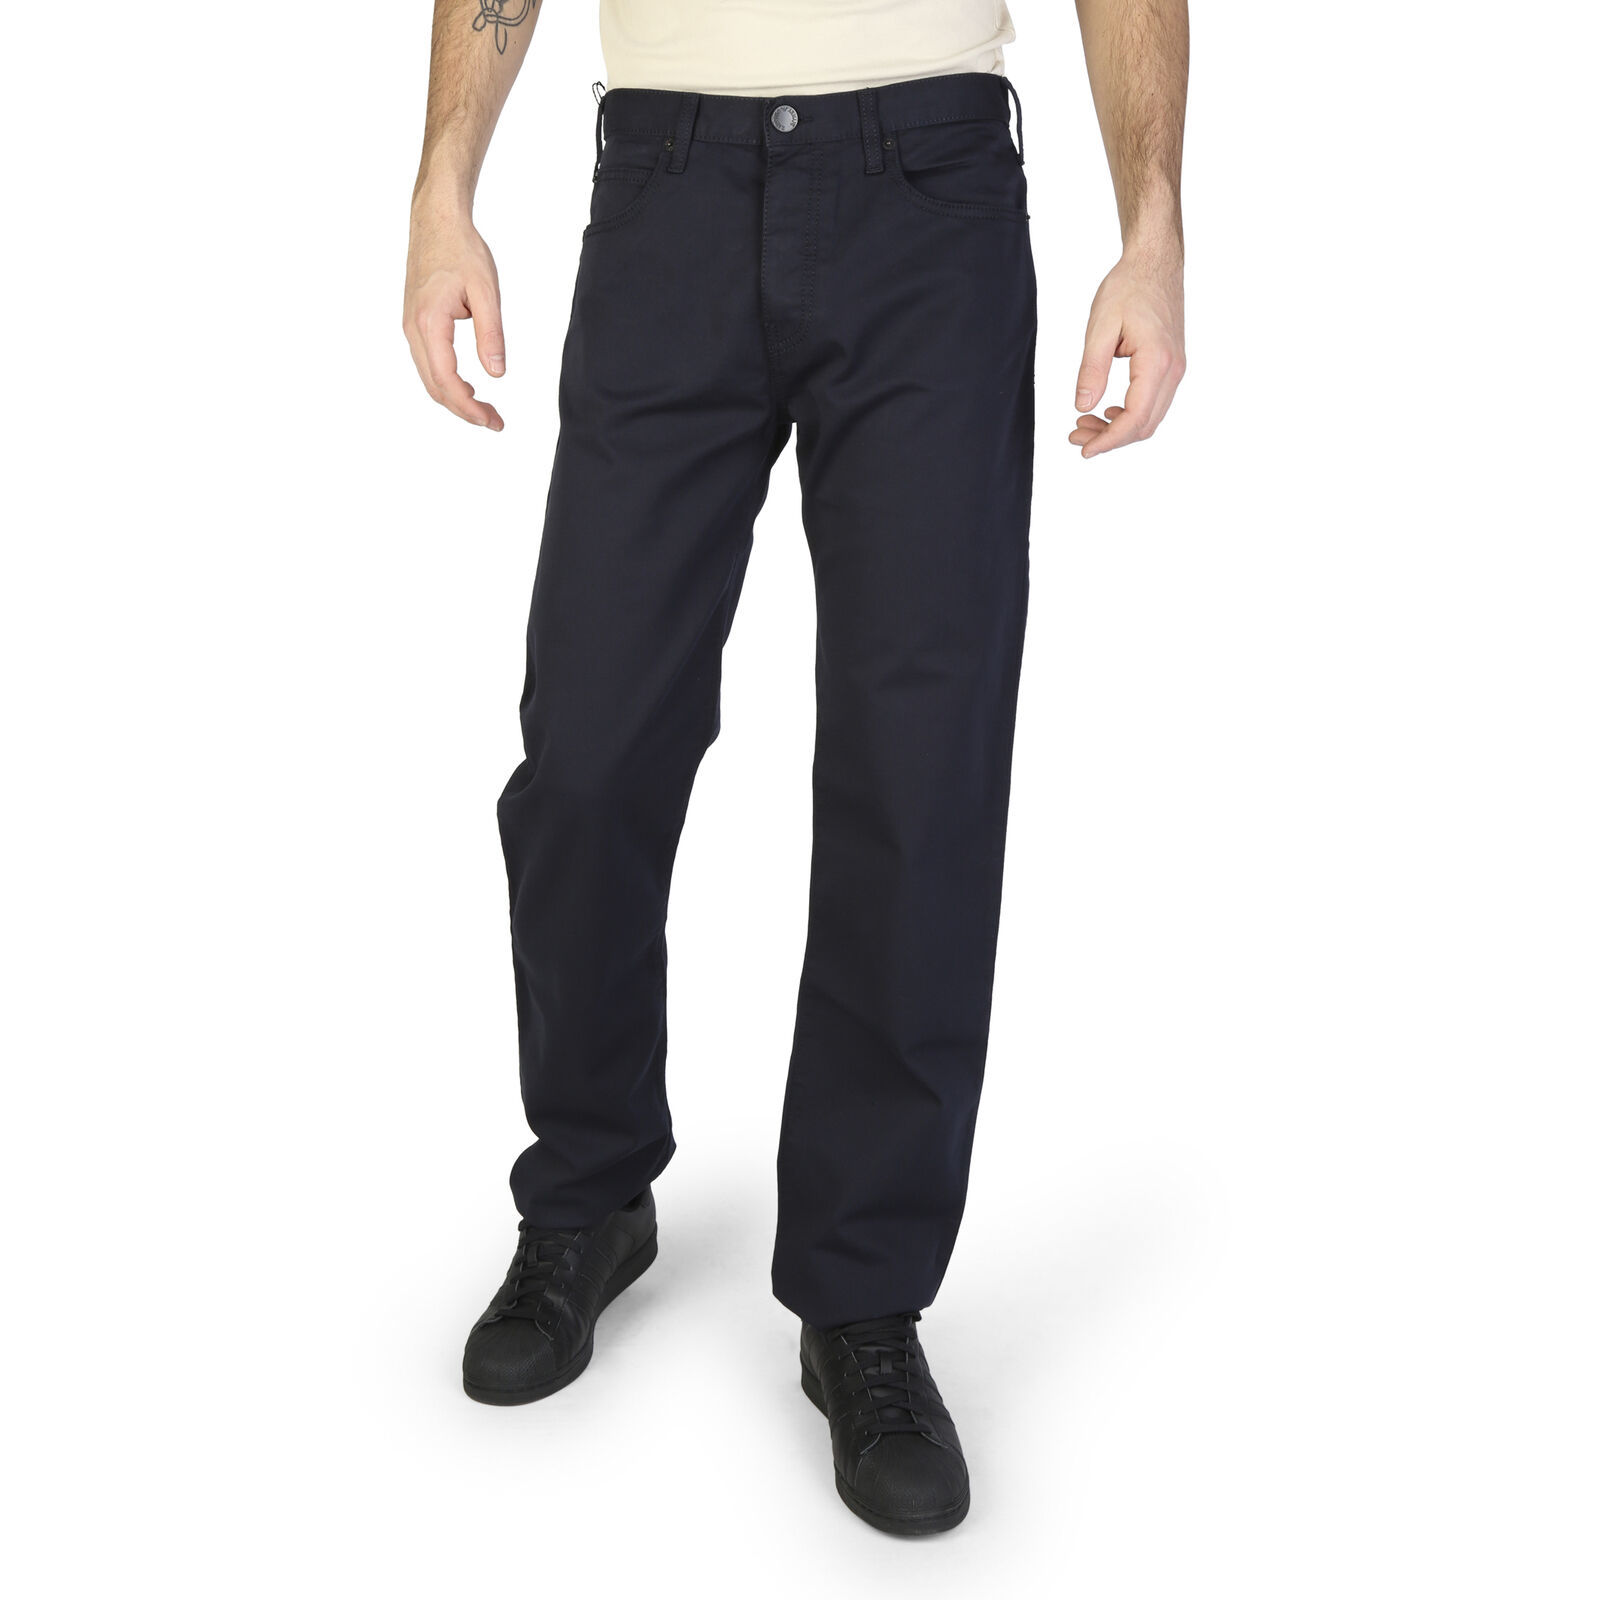 37a44937c Jeans Emporio Armani Homme BNJ21 AH, and similar items